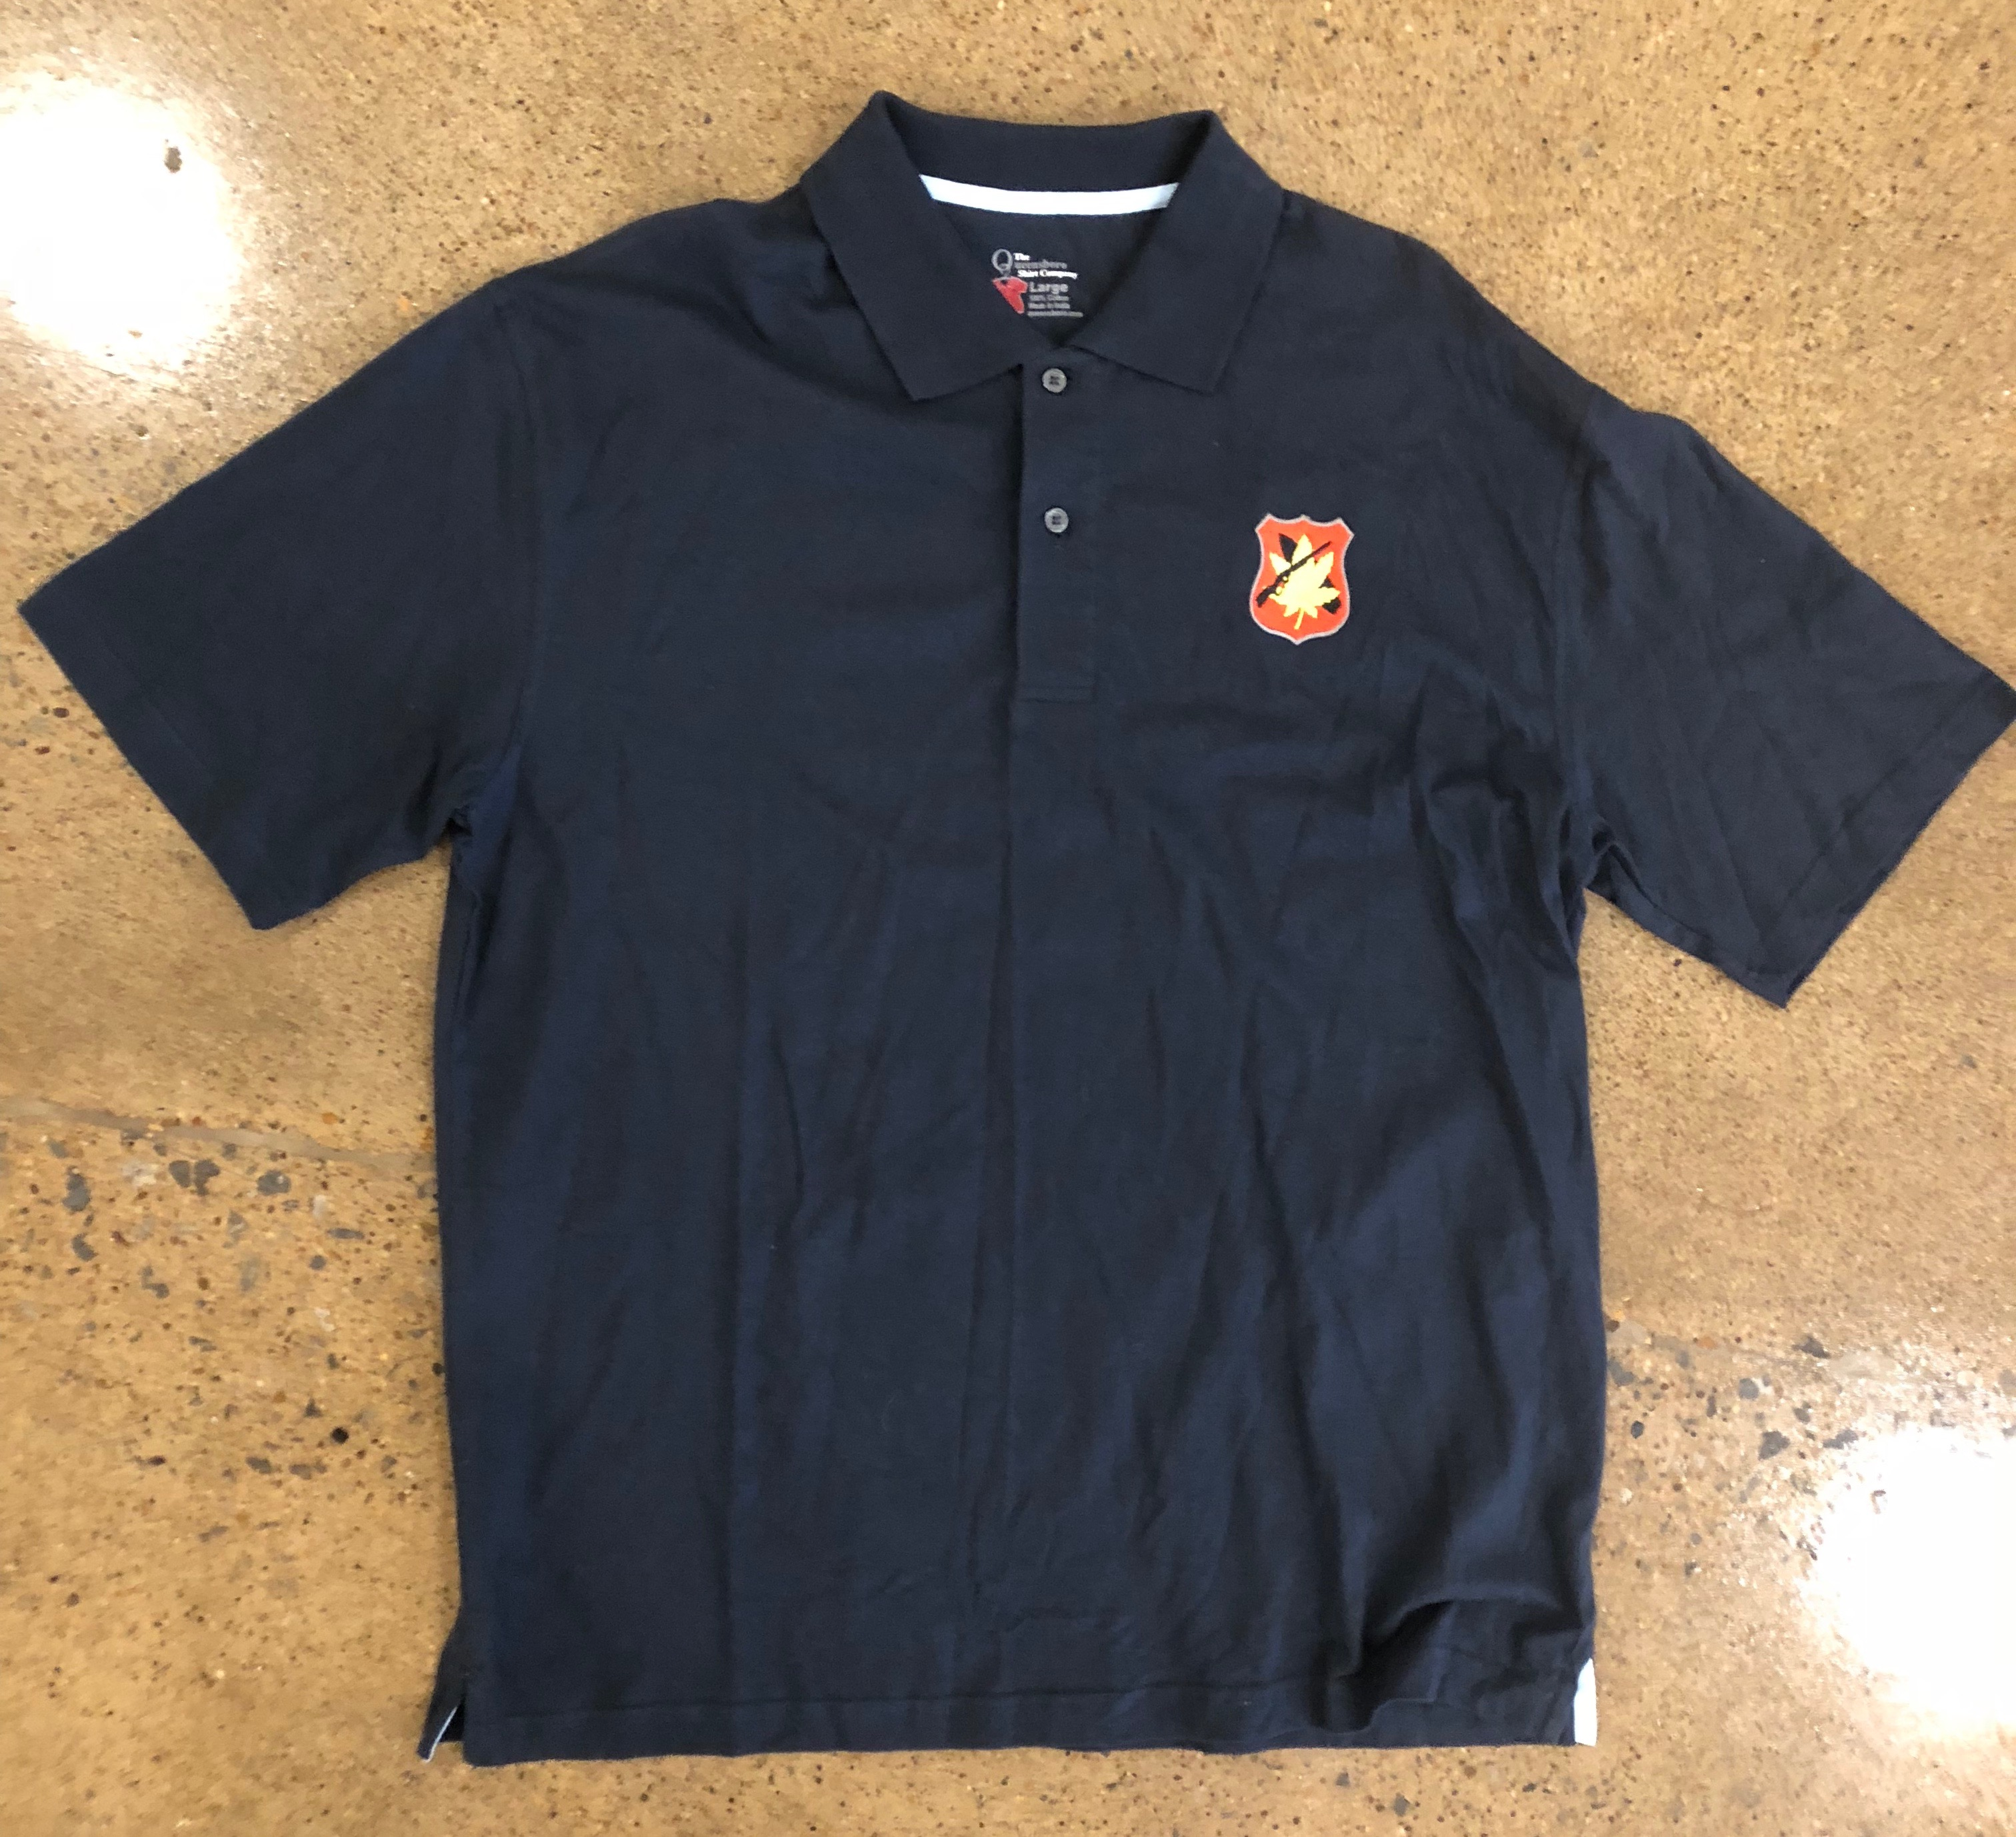 467 Surf and Gun Club Polo Shirt ON SALE!